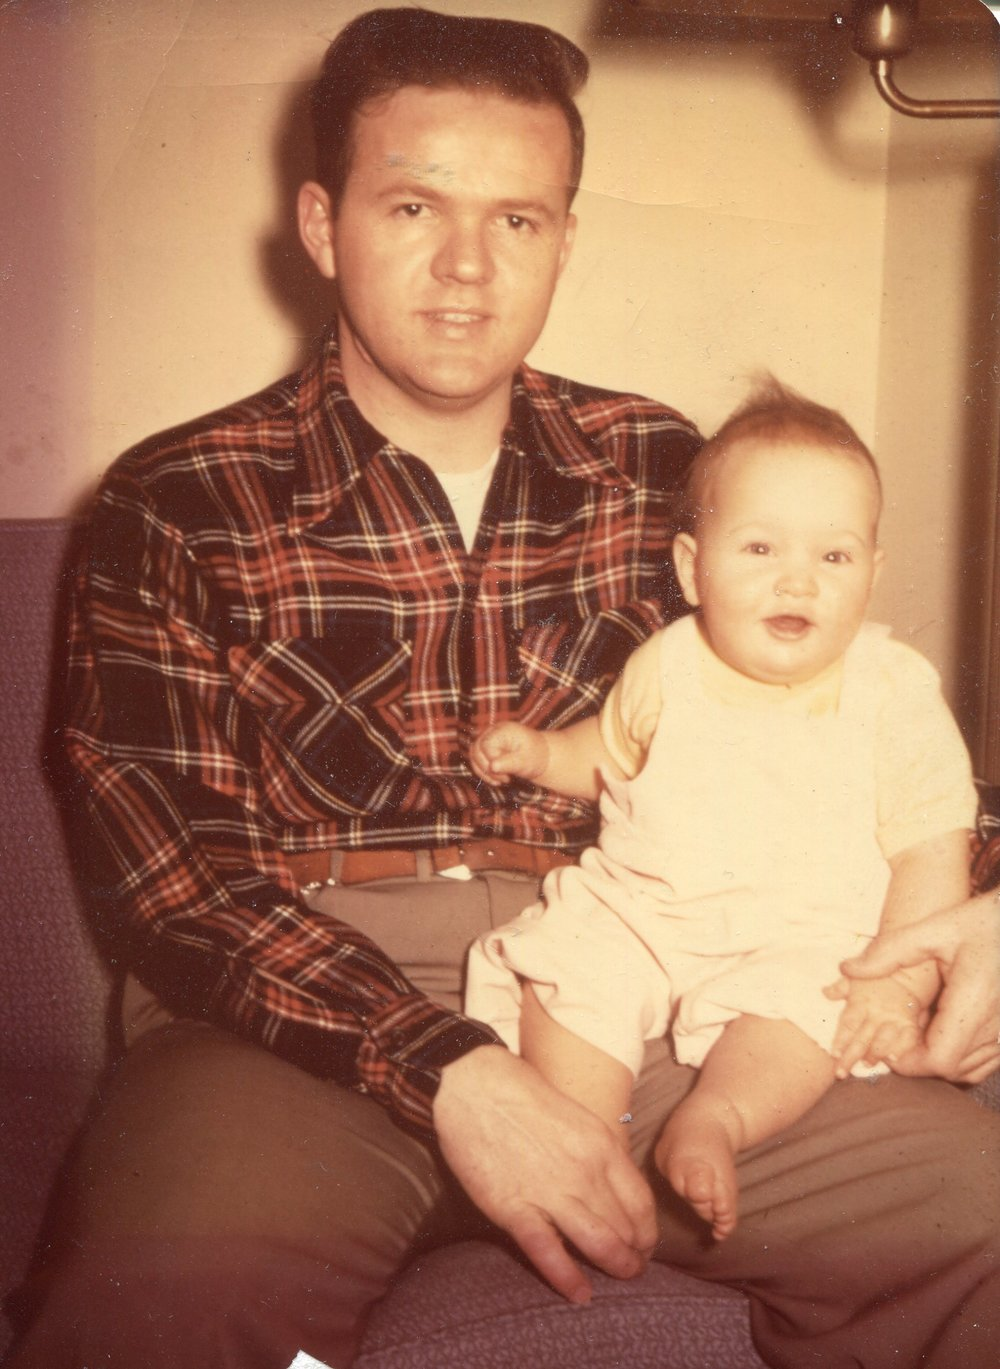 My dad and me.